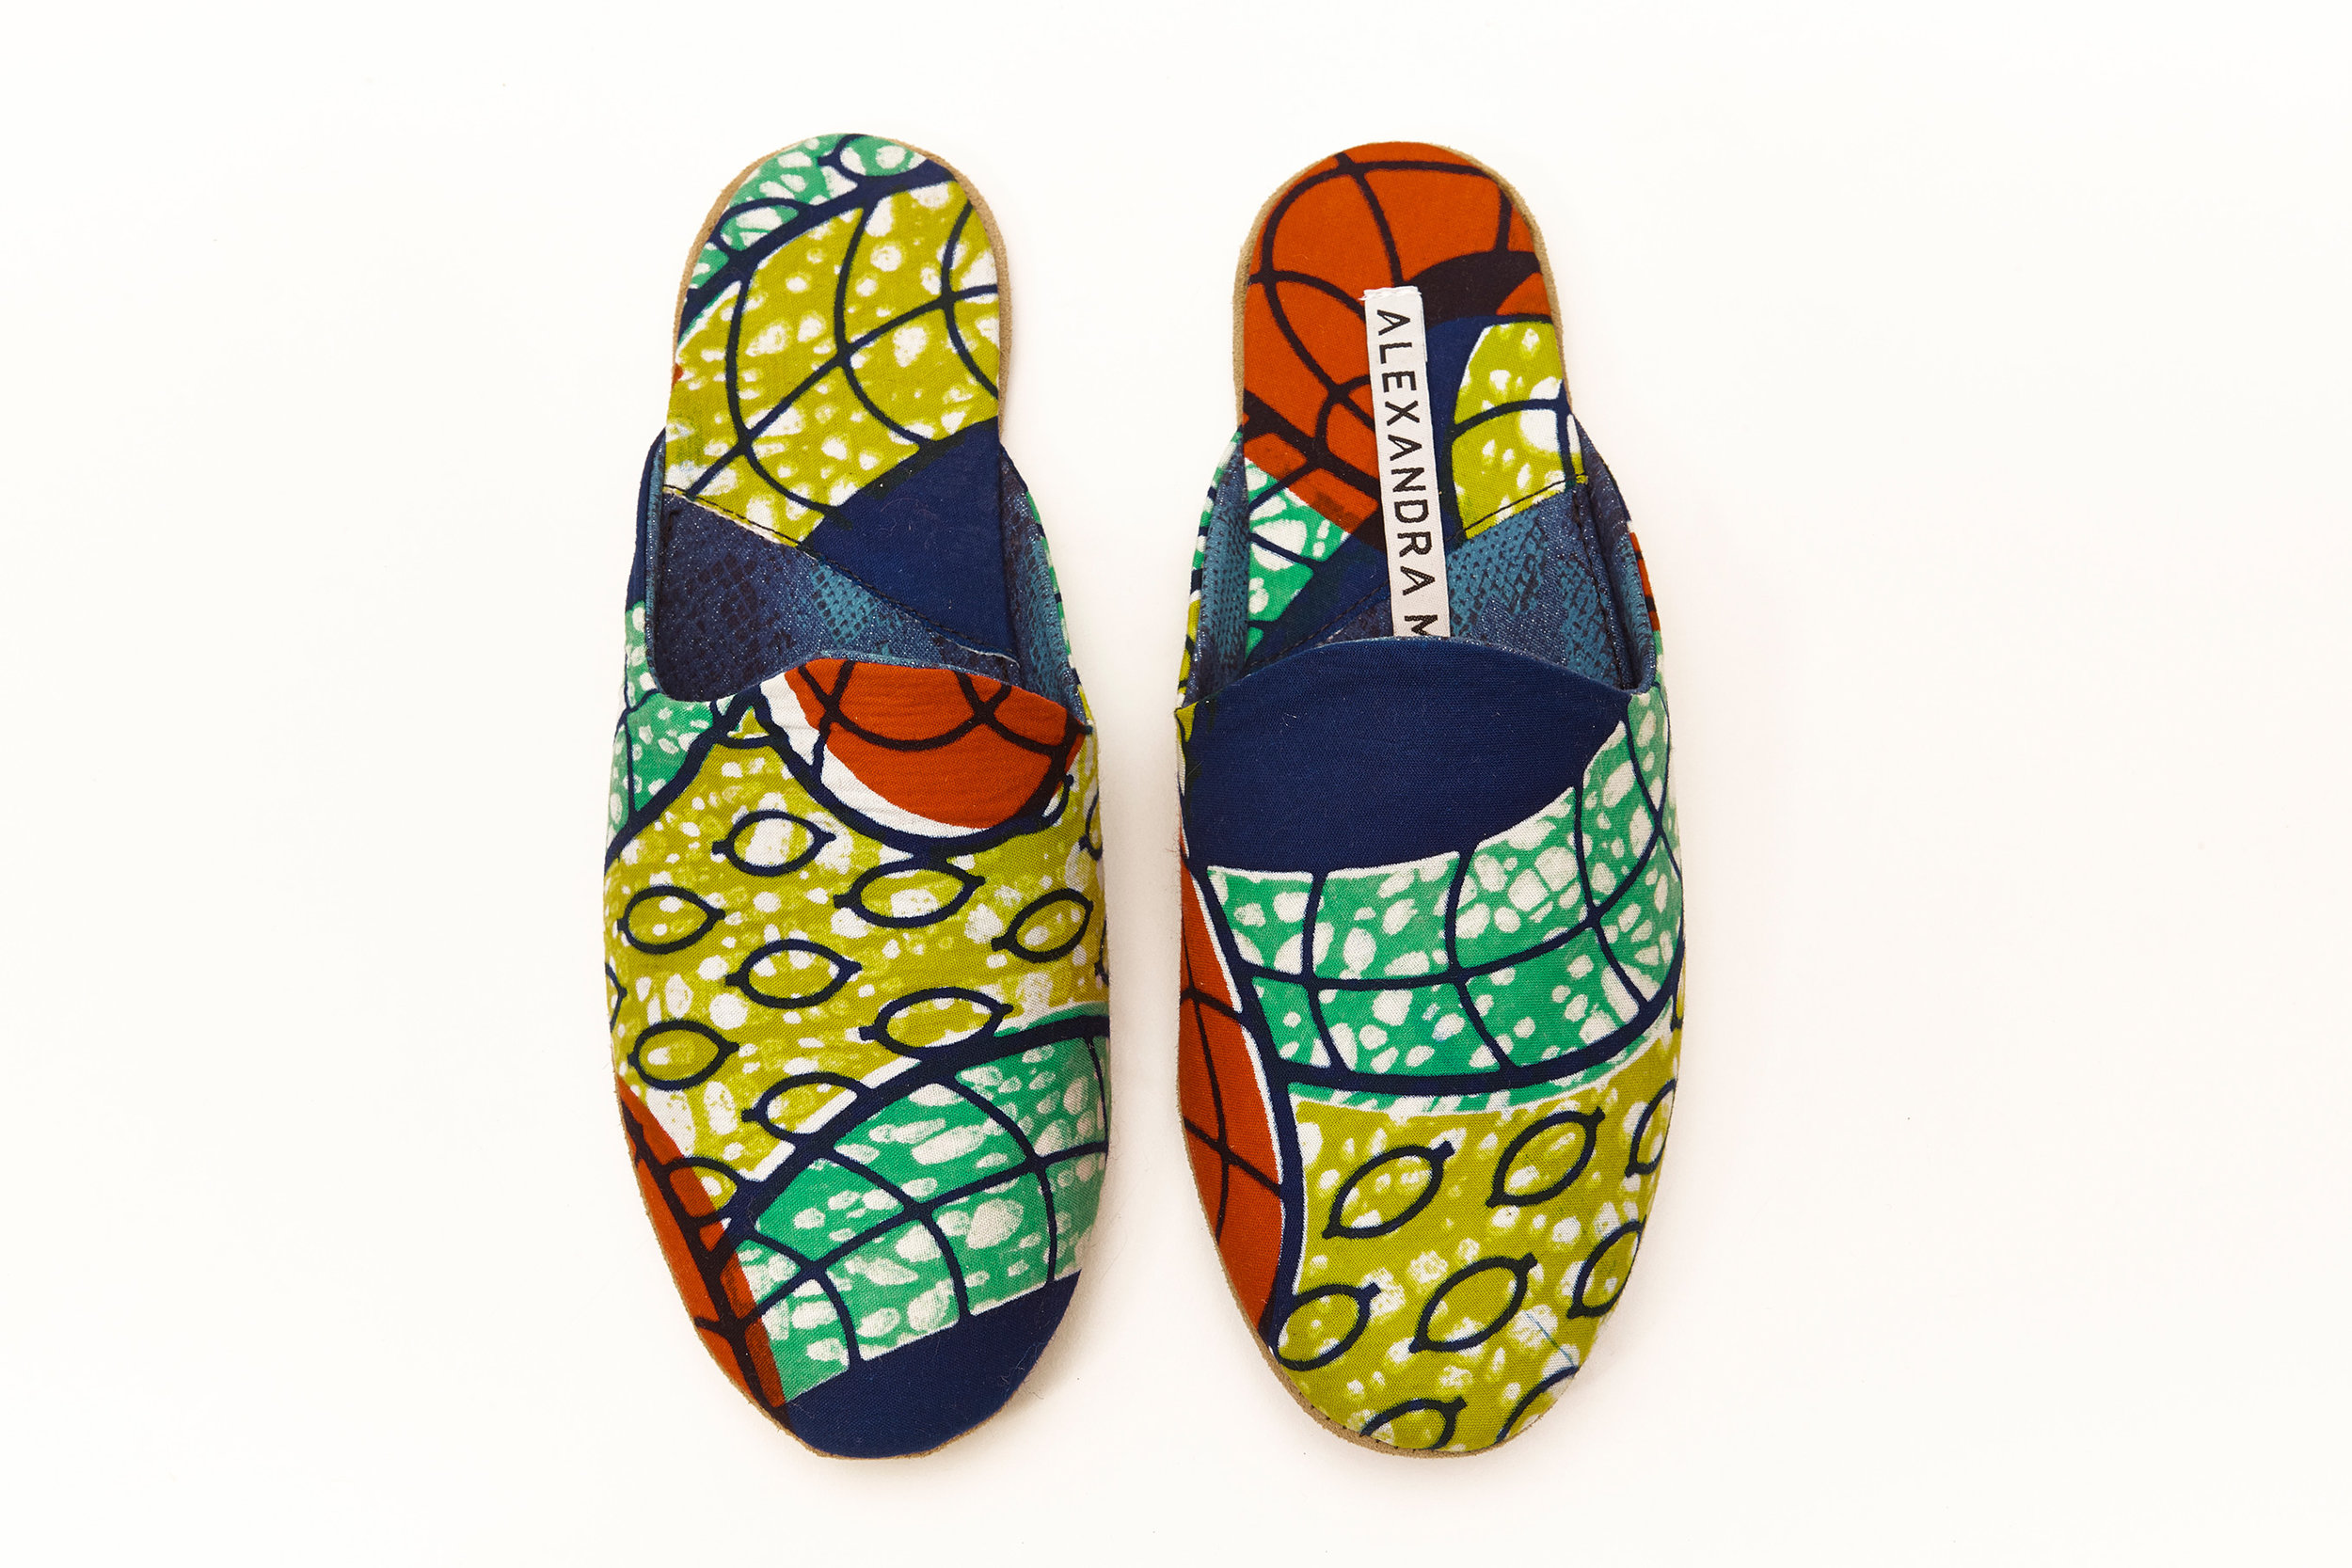 """Slippers   The following is placeholder text known as """"lorem ipsum,"""" which is scrambled Latin used by designers to mimic real copy. Vivamus sit amet semper lacus, in mollis libero. Donec eget risus diam. Quisque congue porttitor ullamcorper."""